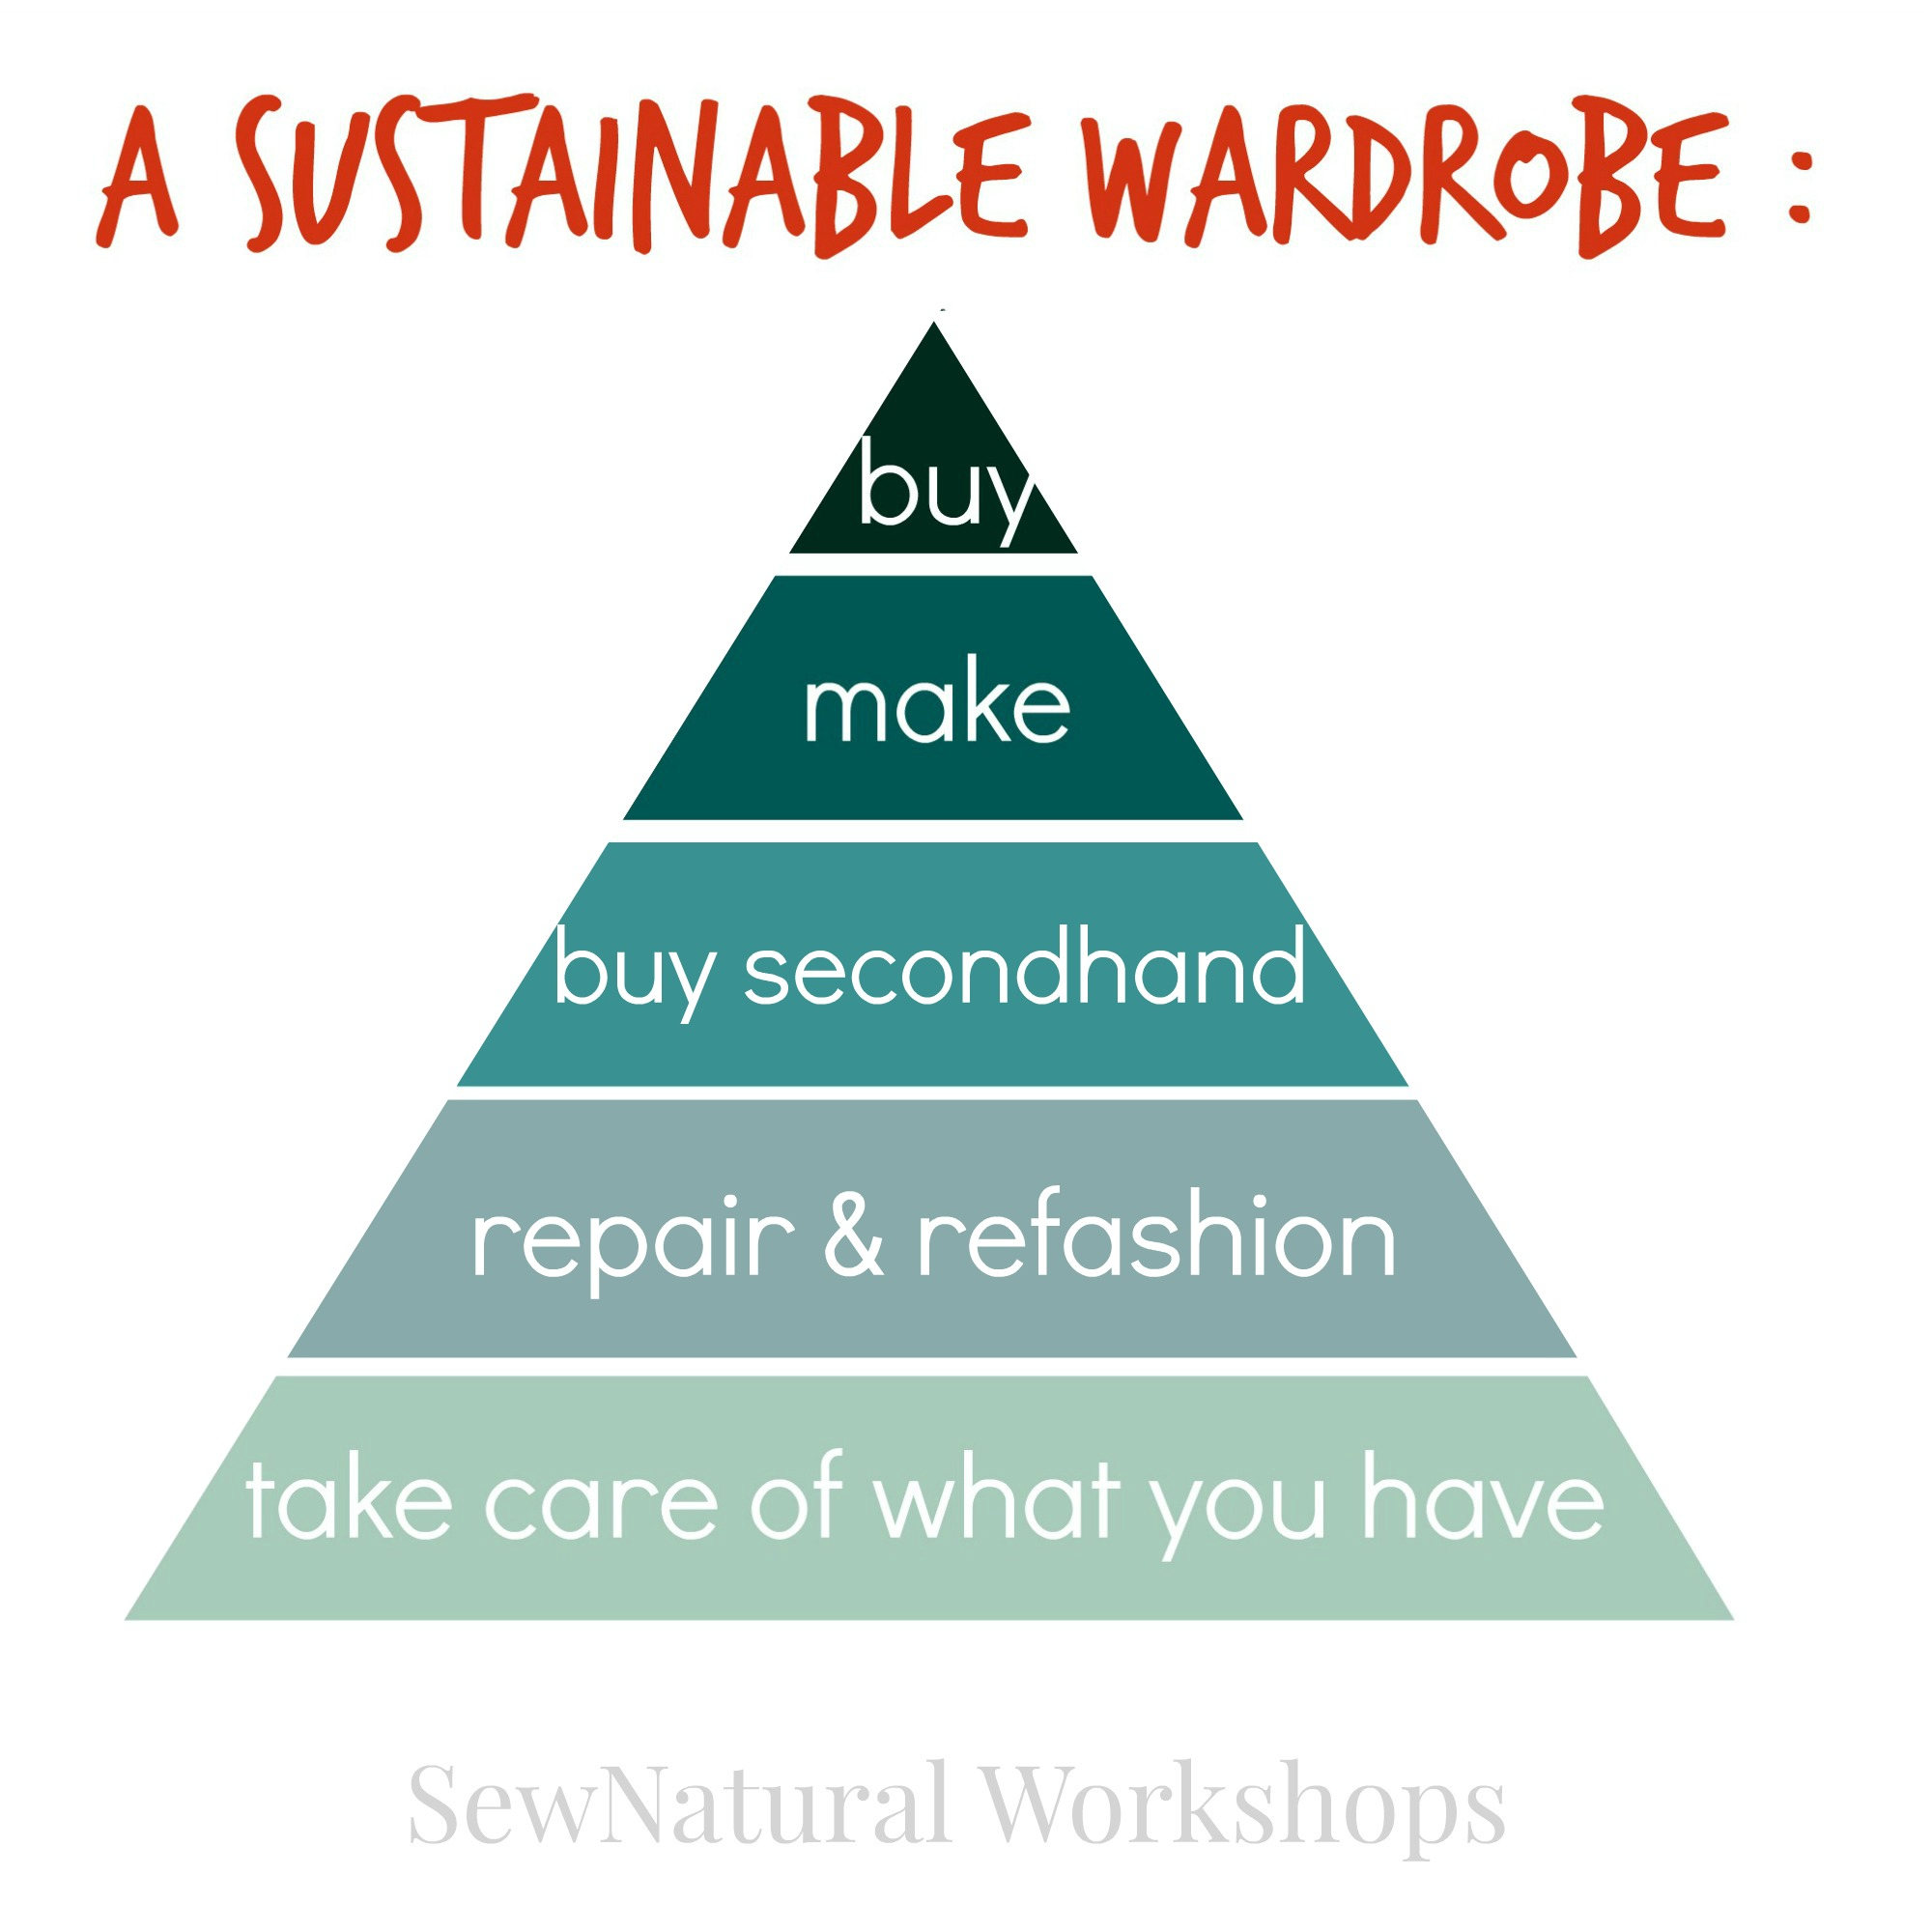 sustainable wardrobe piramide